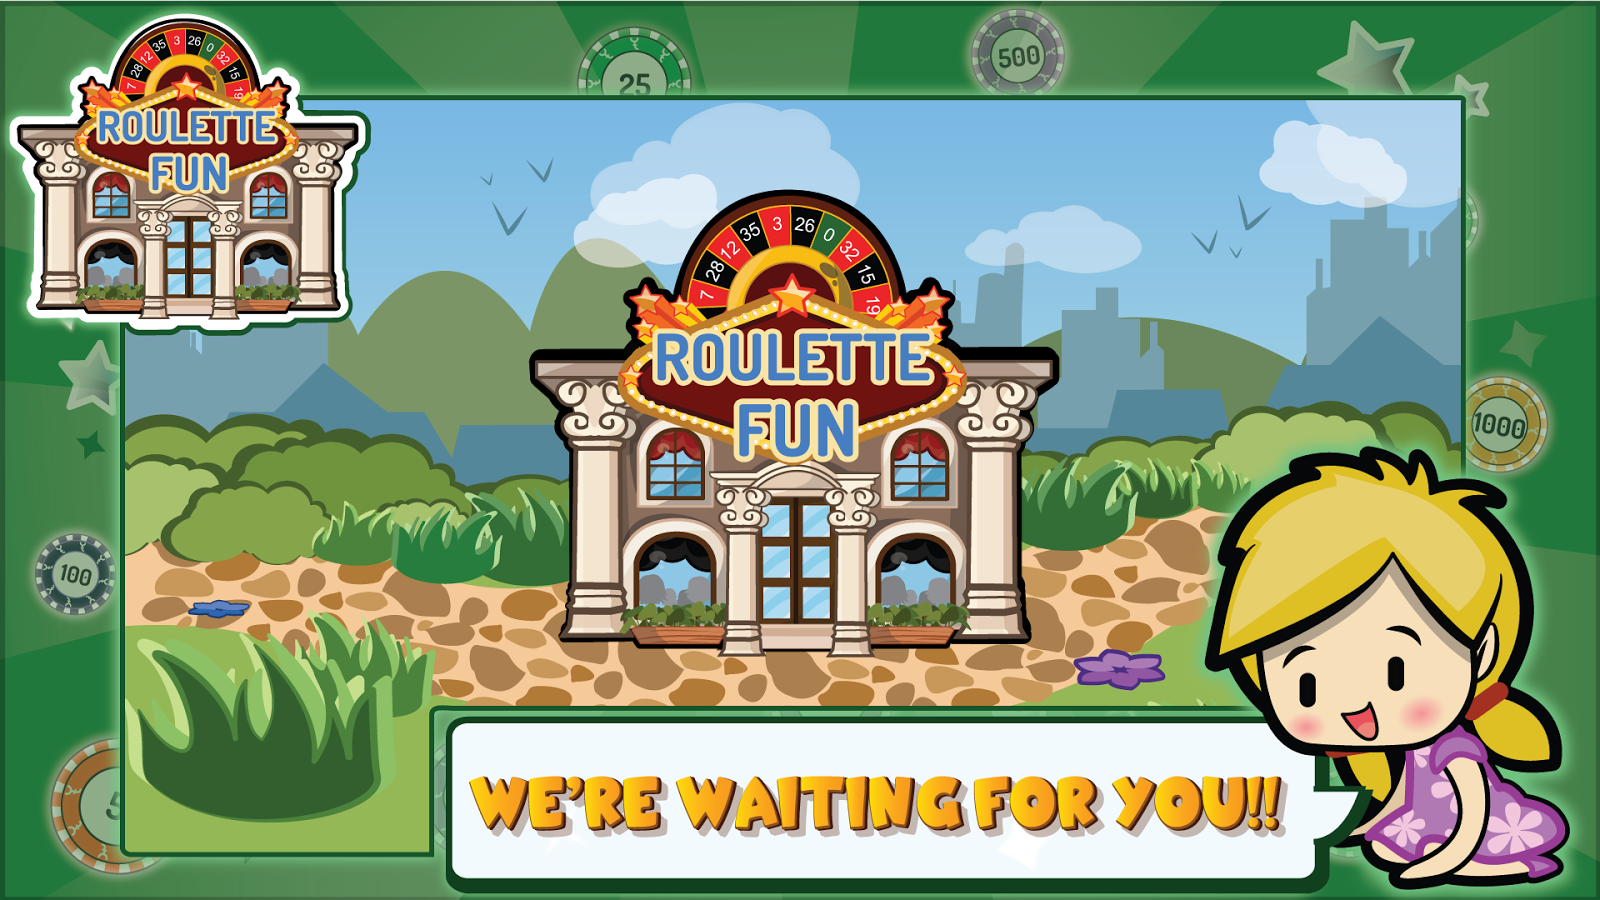 play roulette free for fun